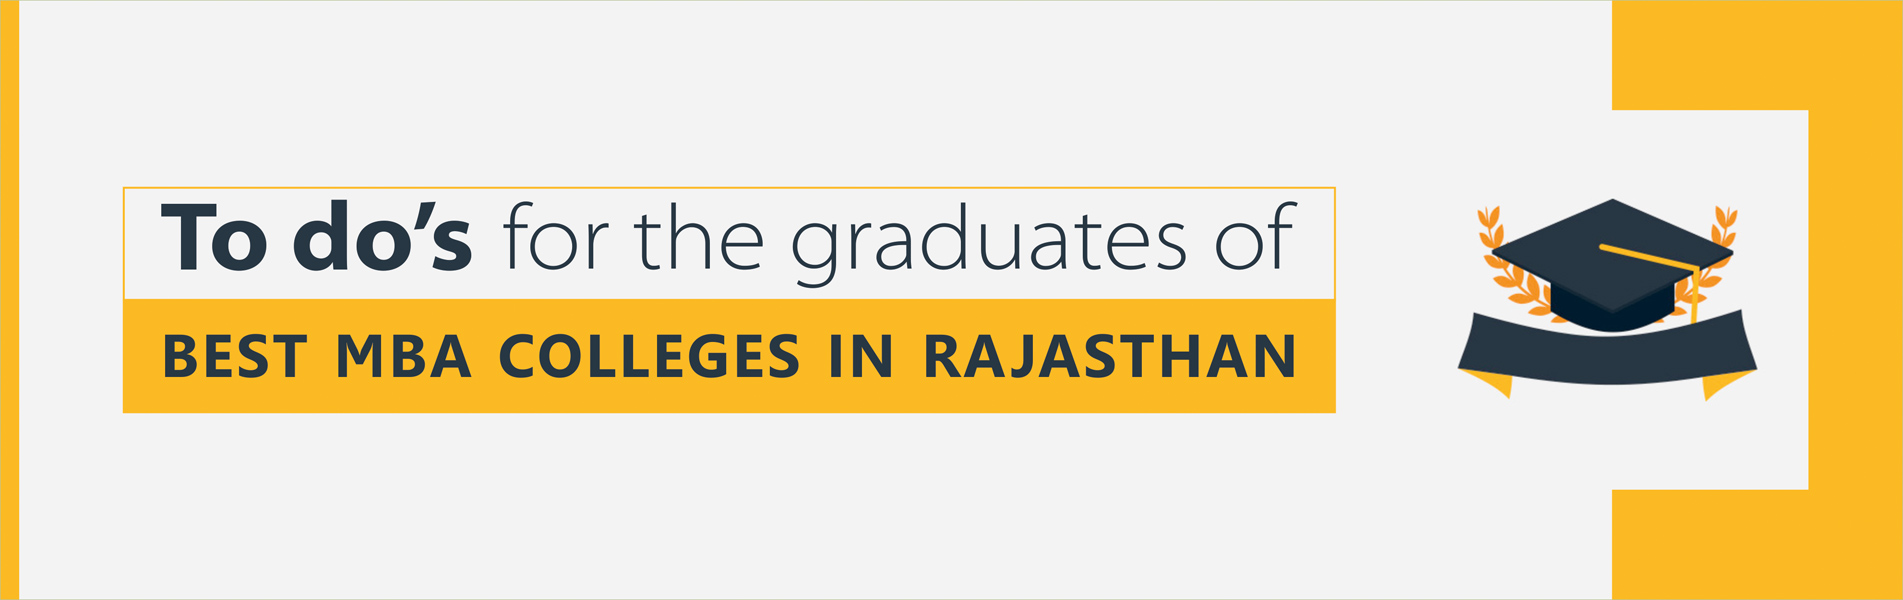 To-do-for-the-graduates-of-Best-MBA-College-in-Rajasthan